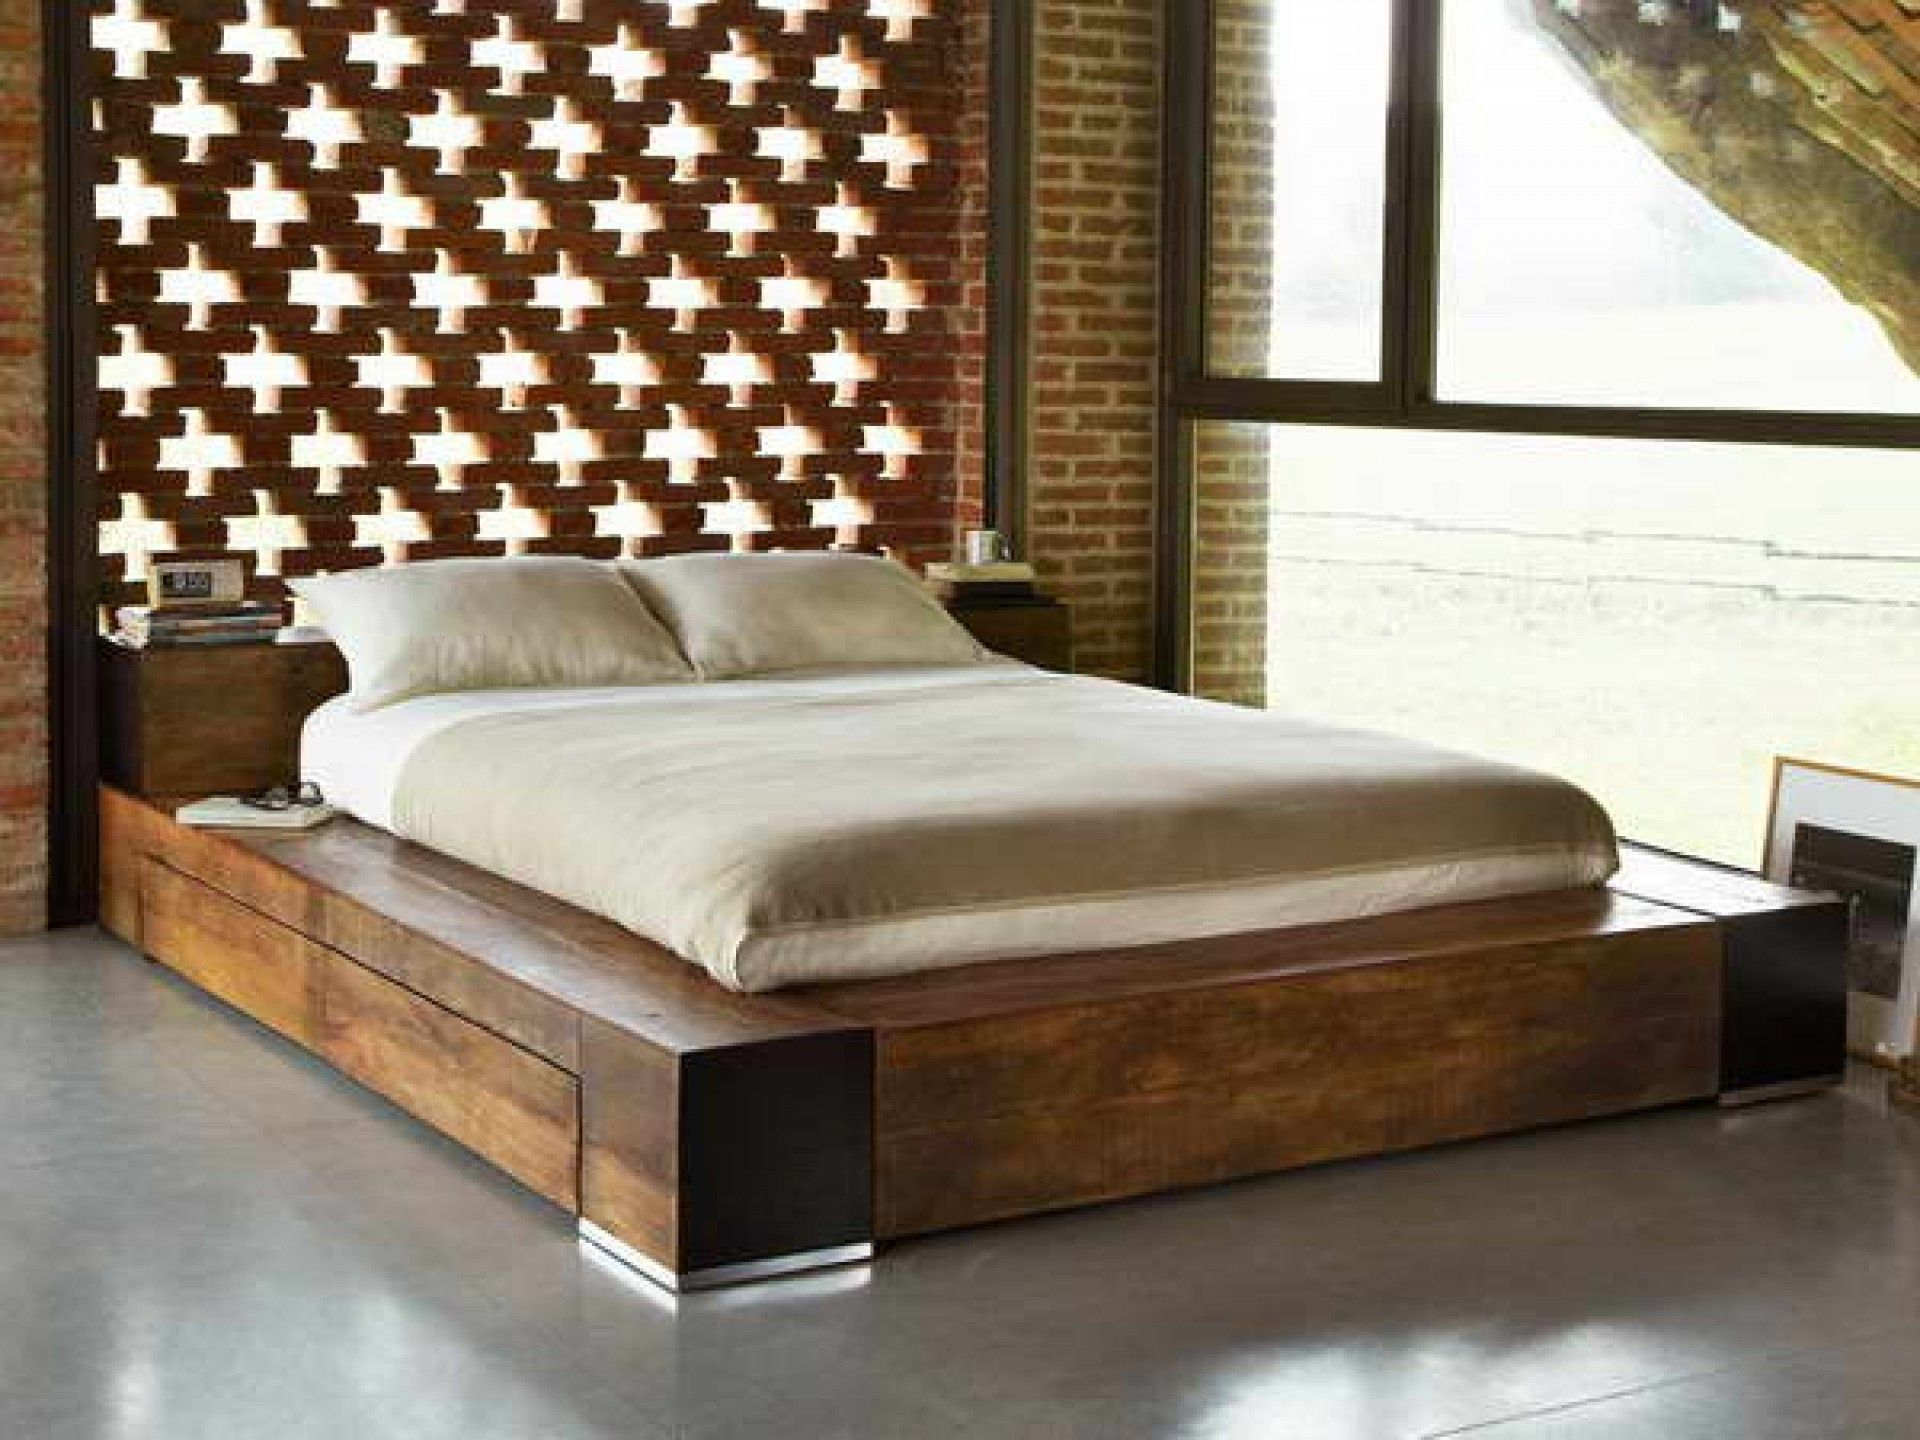 Design Wood Bed Frame brown lacquer teak wood bed frame having double storage drawer underneath on gray ceramic tiled floor